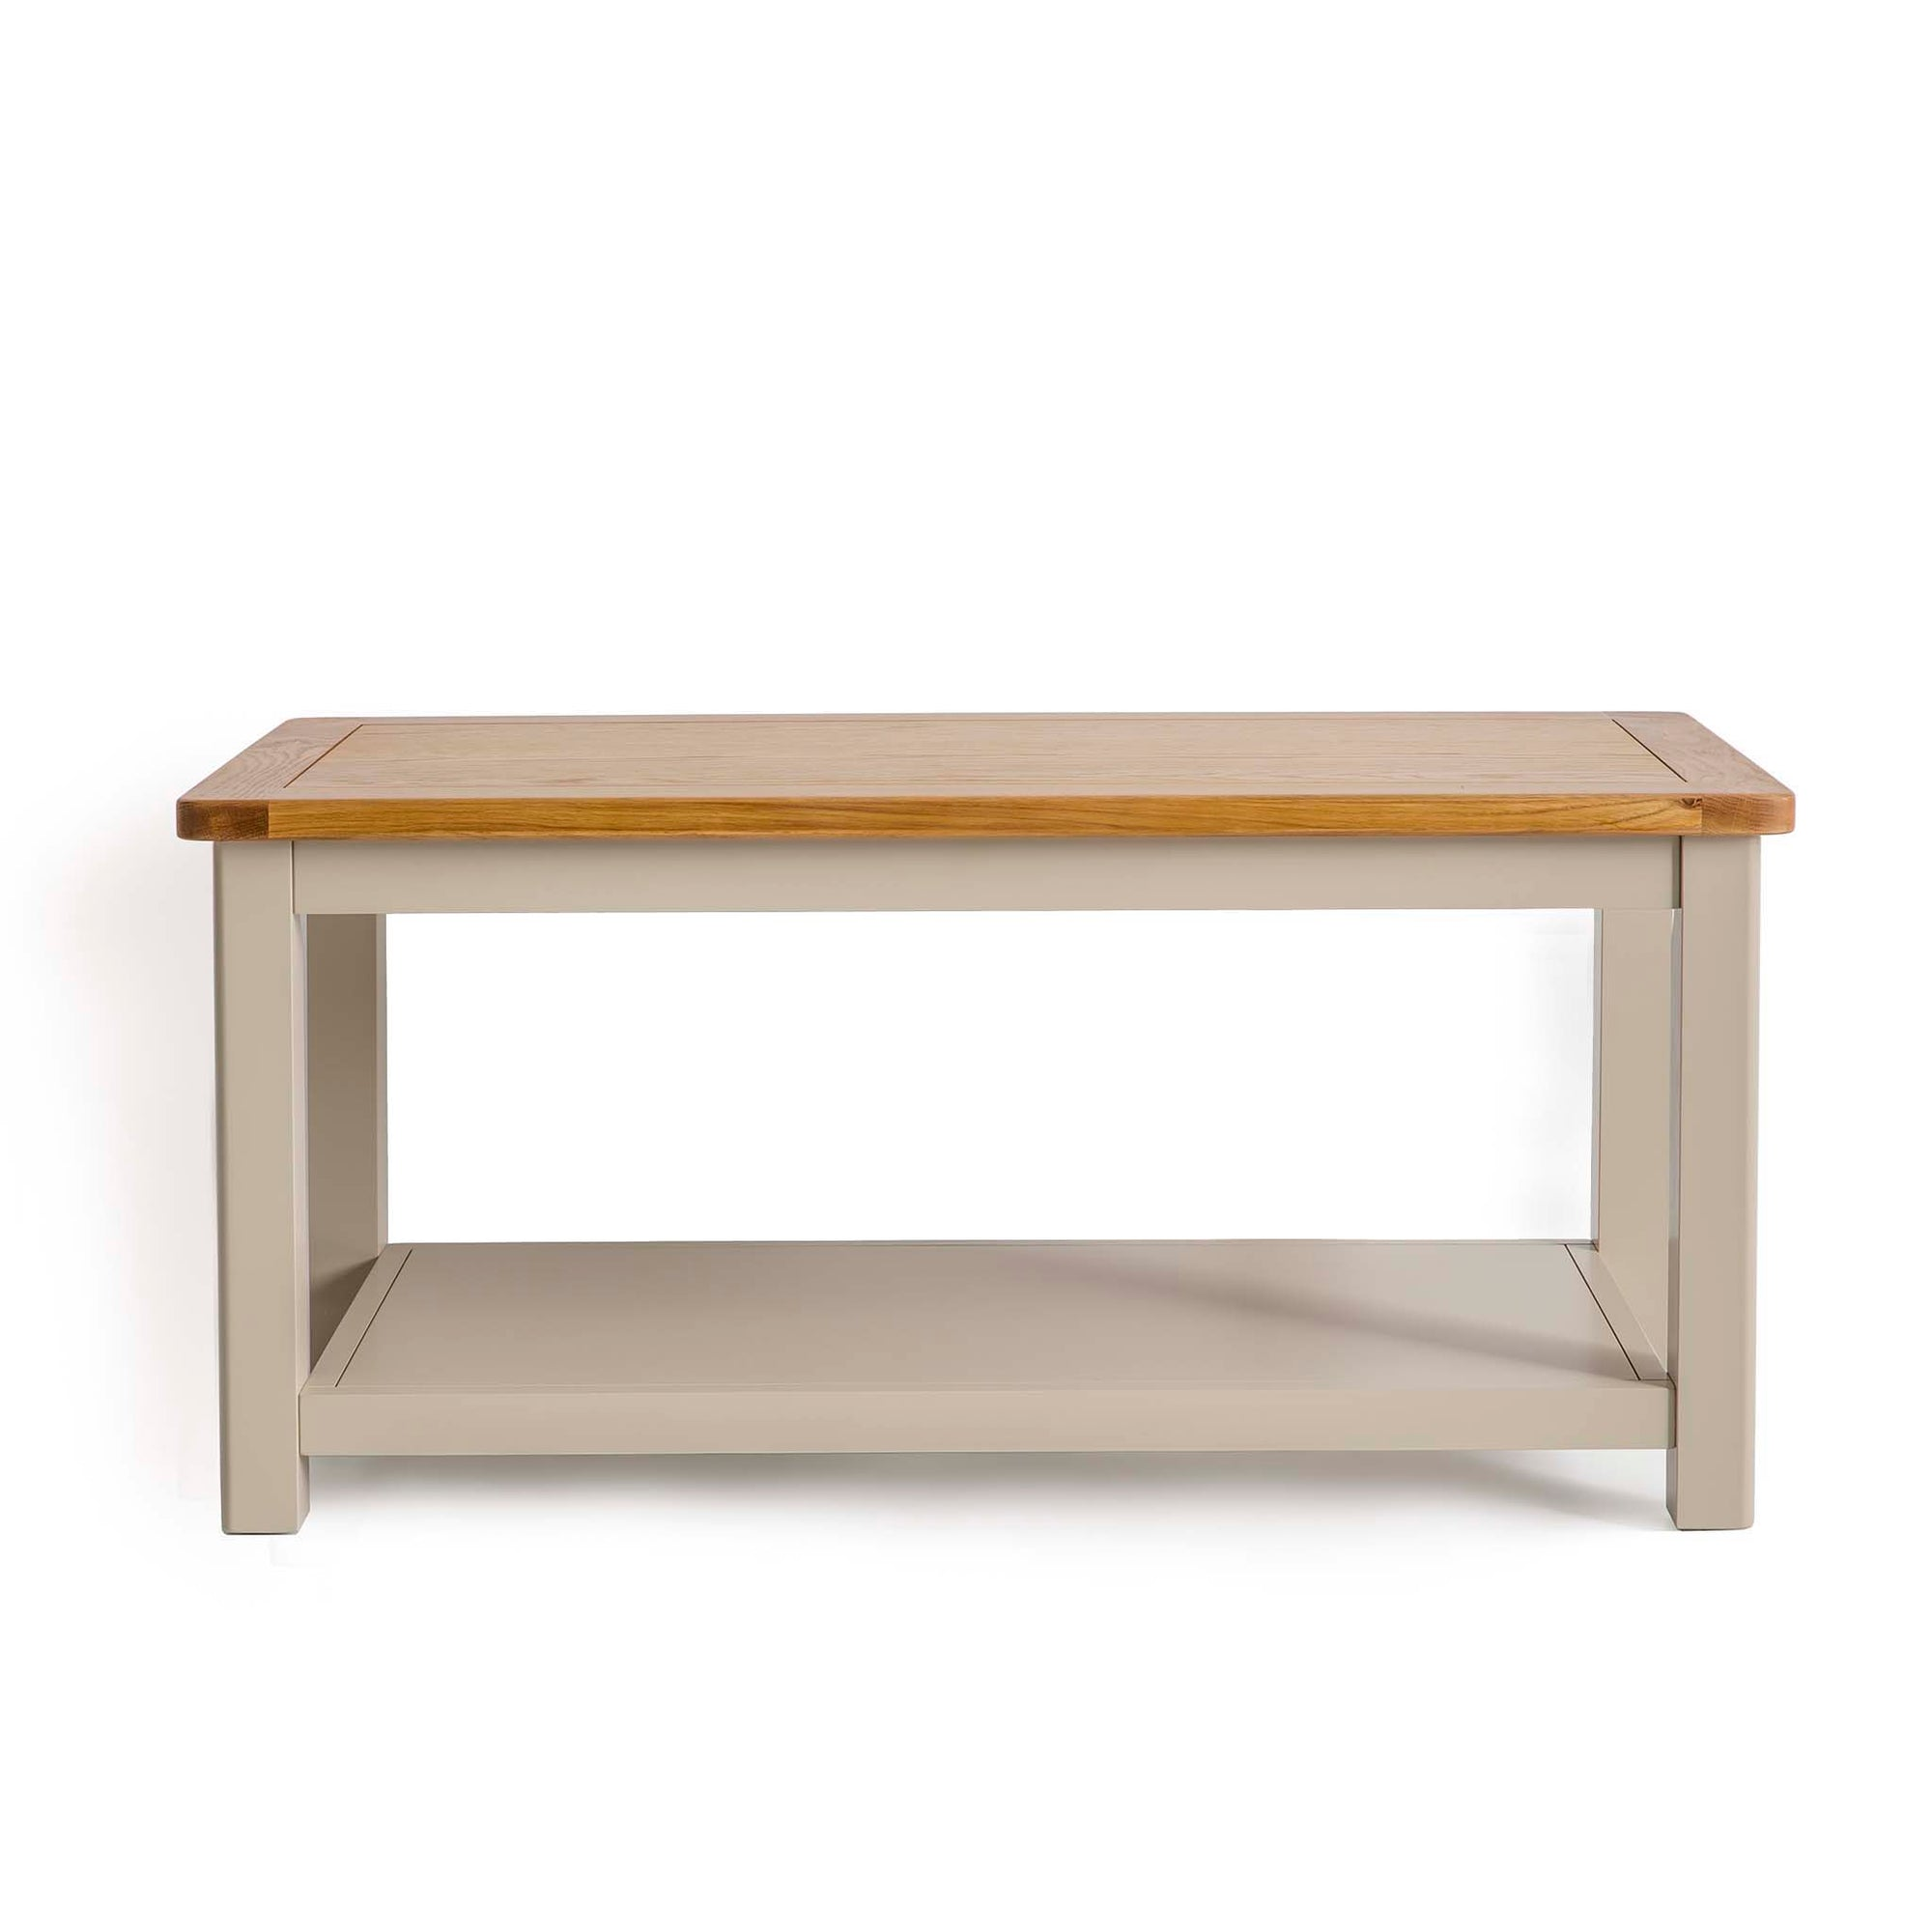 The Padstow Grey Wooden Coffee Table from Roseland Furniture